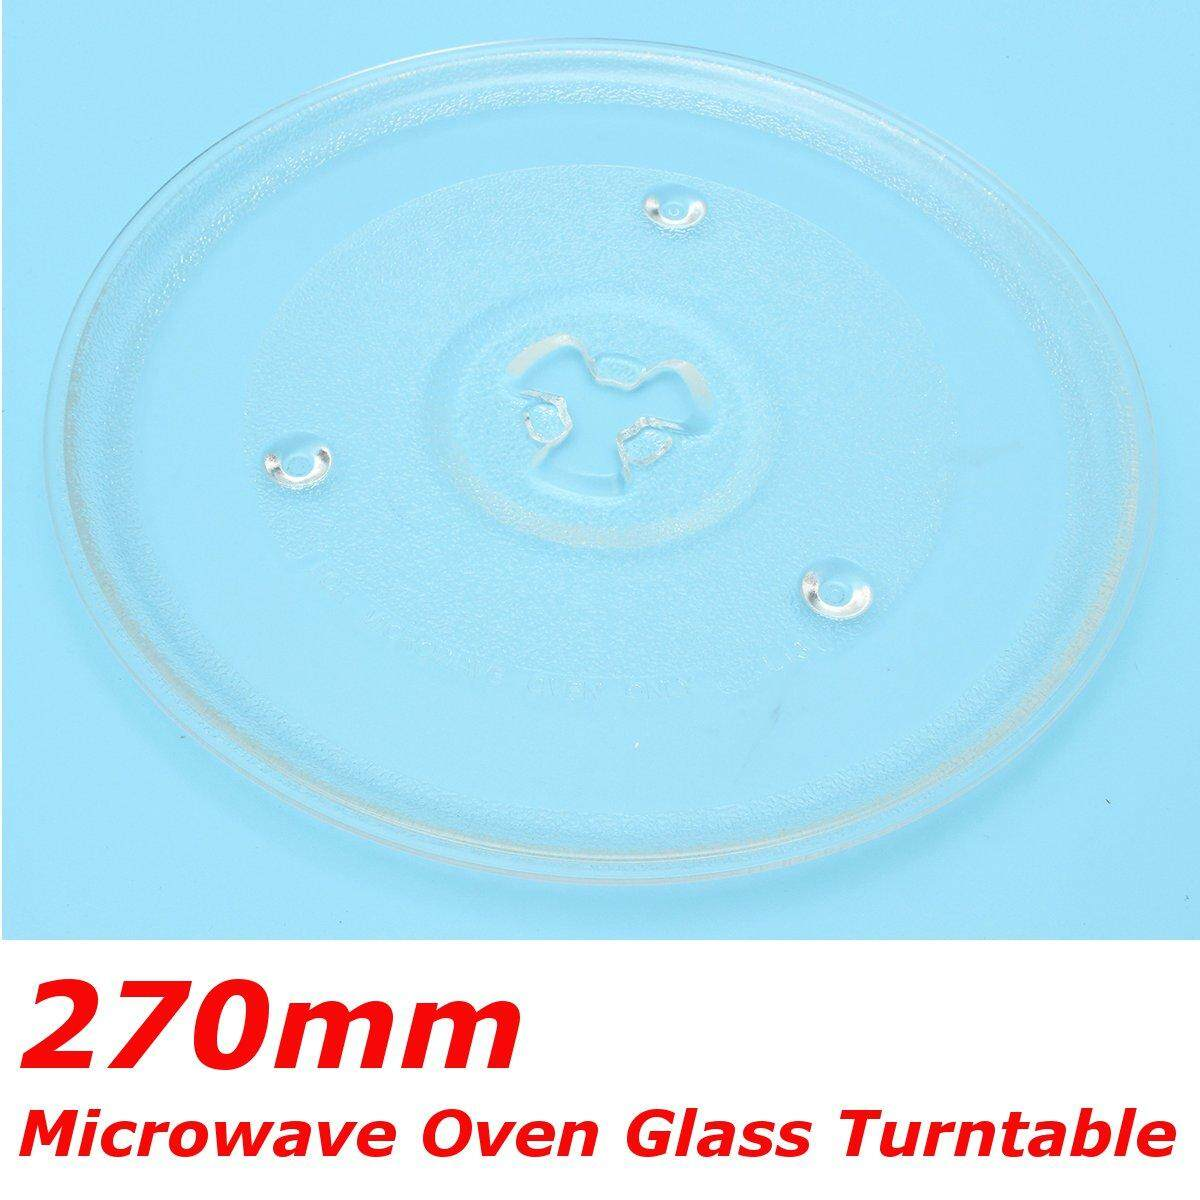 1pc Clear Microwave Oven Turntable Glass Tray Glass Plate Accessories Dia: 27cm By Audew.